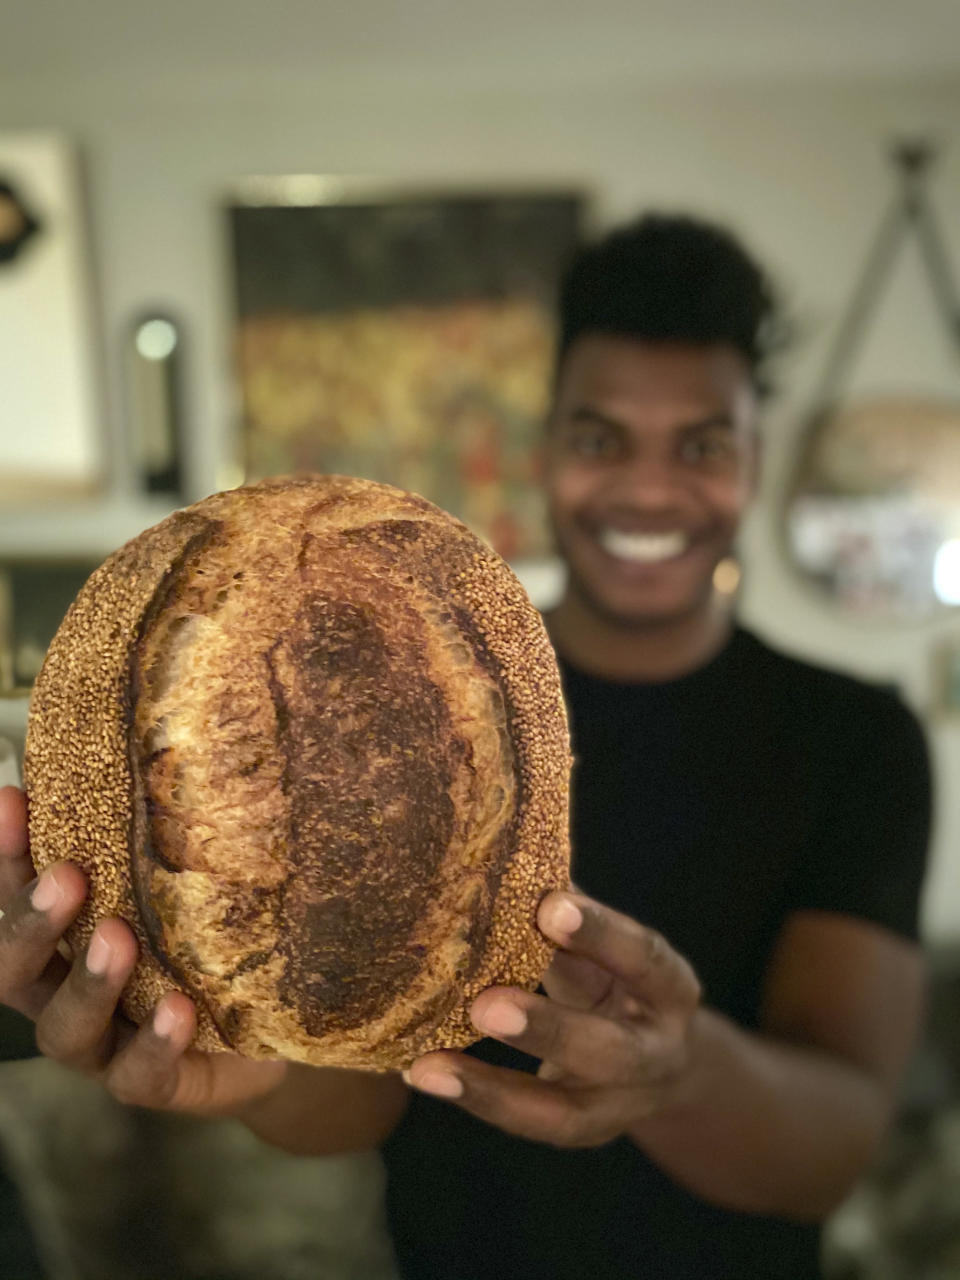 """Broadway performer Max Kumangai holds a loaf of sourdough bread at his apartment in New York. The triple threat from the musical """"Jagged Little Pill"""" has leaned into a fourth skill as the pandemic marches on: baking and selling his own sourdough. (Michael Lowney/Humpday Dough via AP)"""